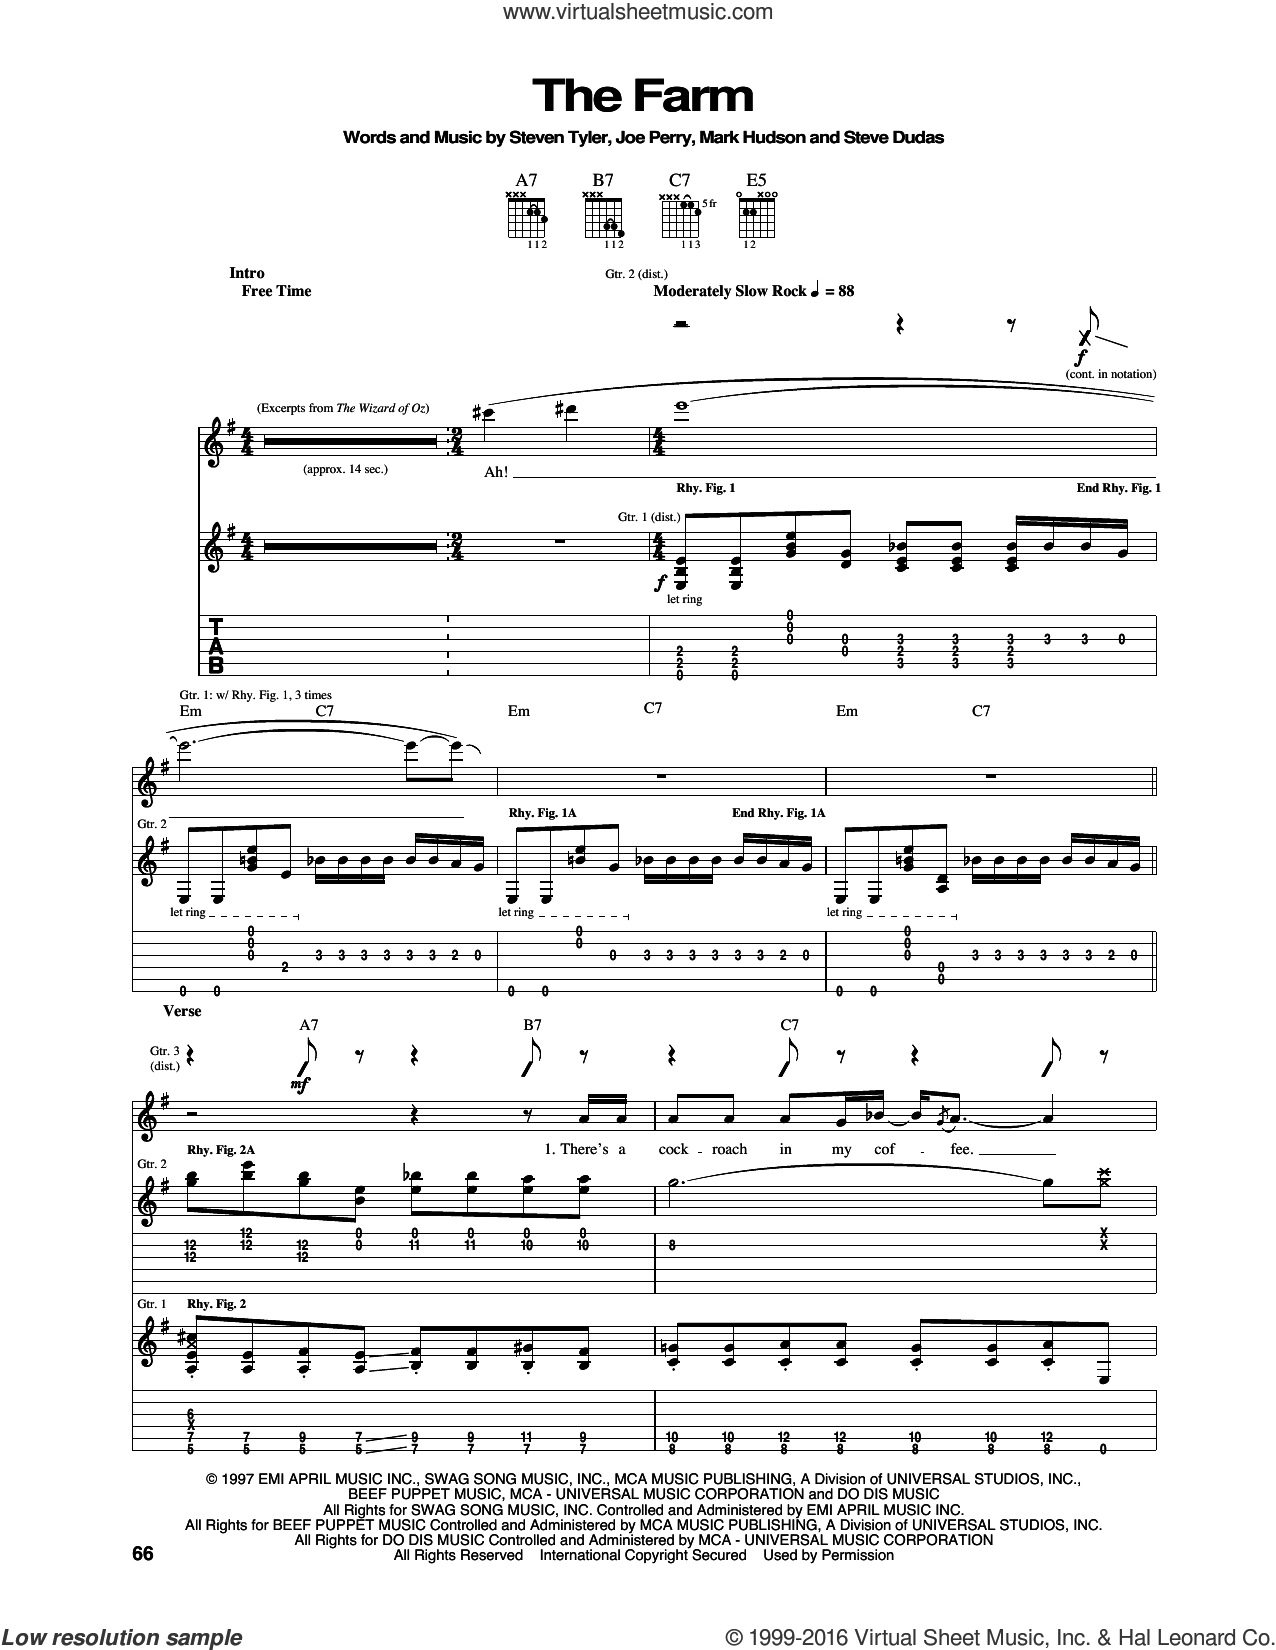 The Farm sheet music for guitar (tablature) by Aerosmith, Joe Perry, Mark Hudson, Steve Dudas and Steven Tyler, intermediate skill level